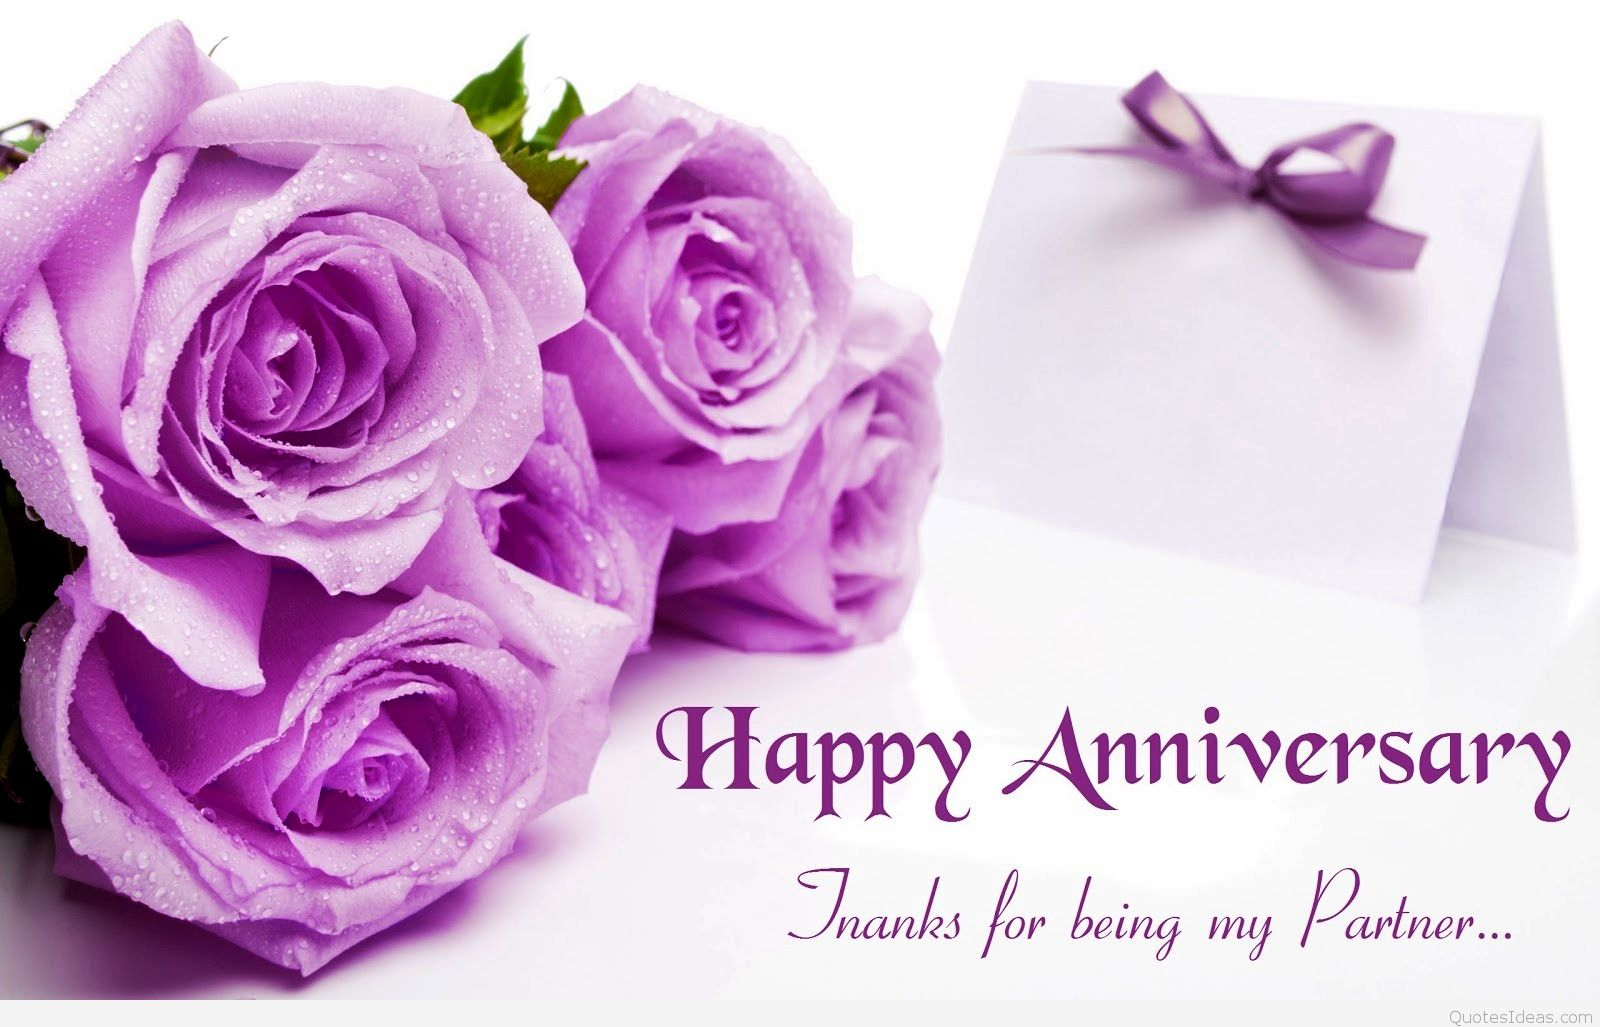 Quotes about Our wedding anniversary (20 quotes)